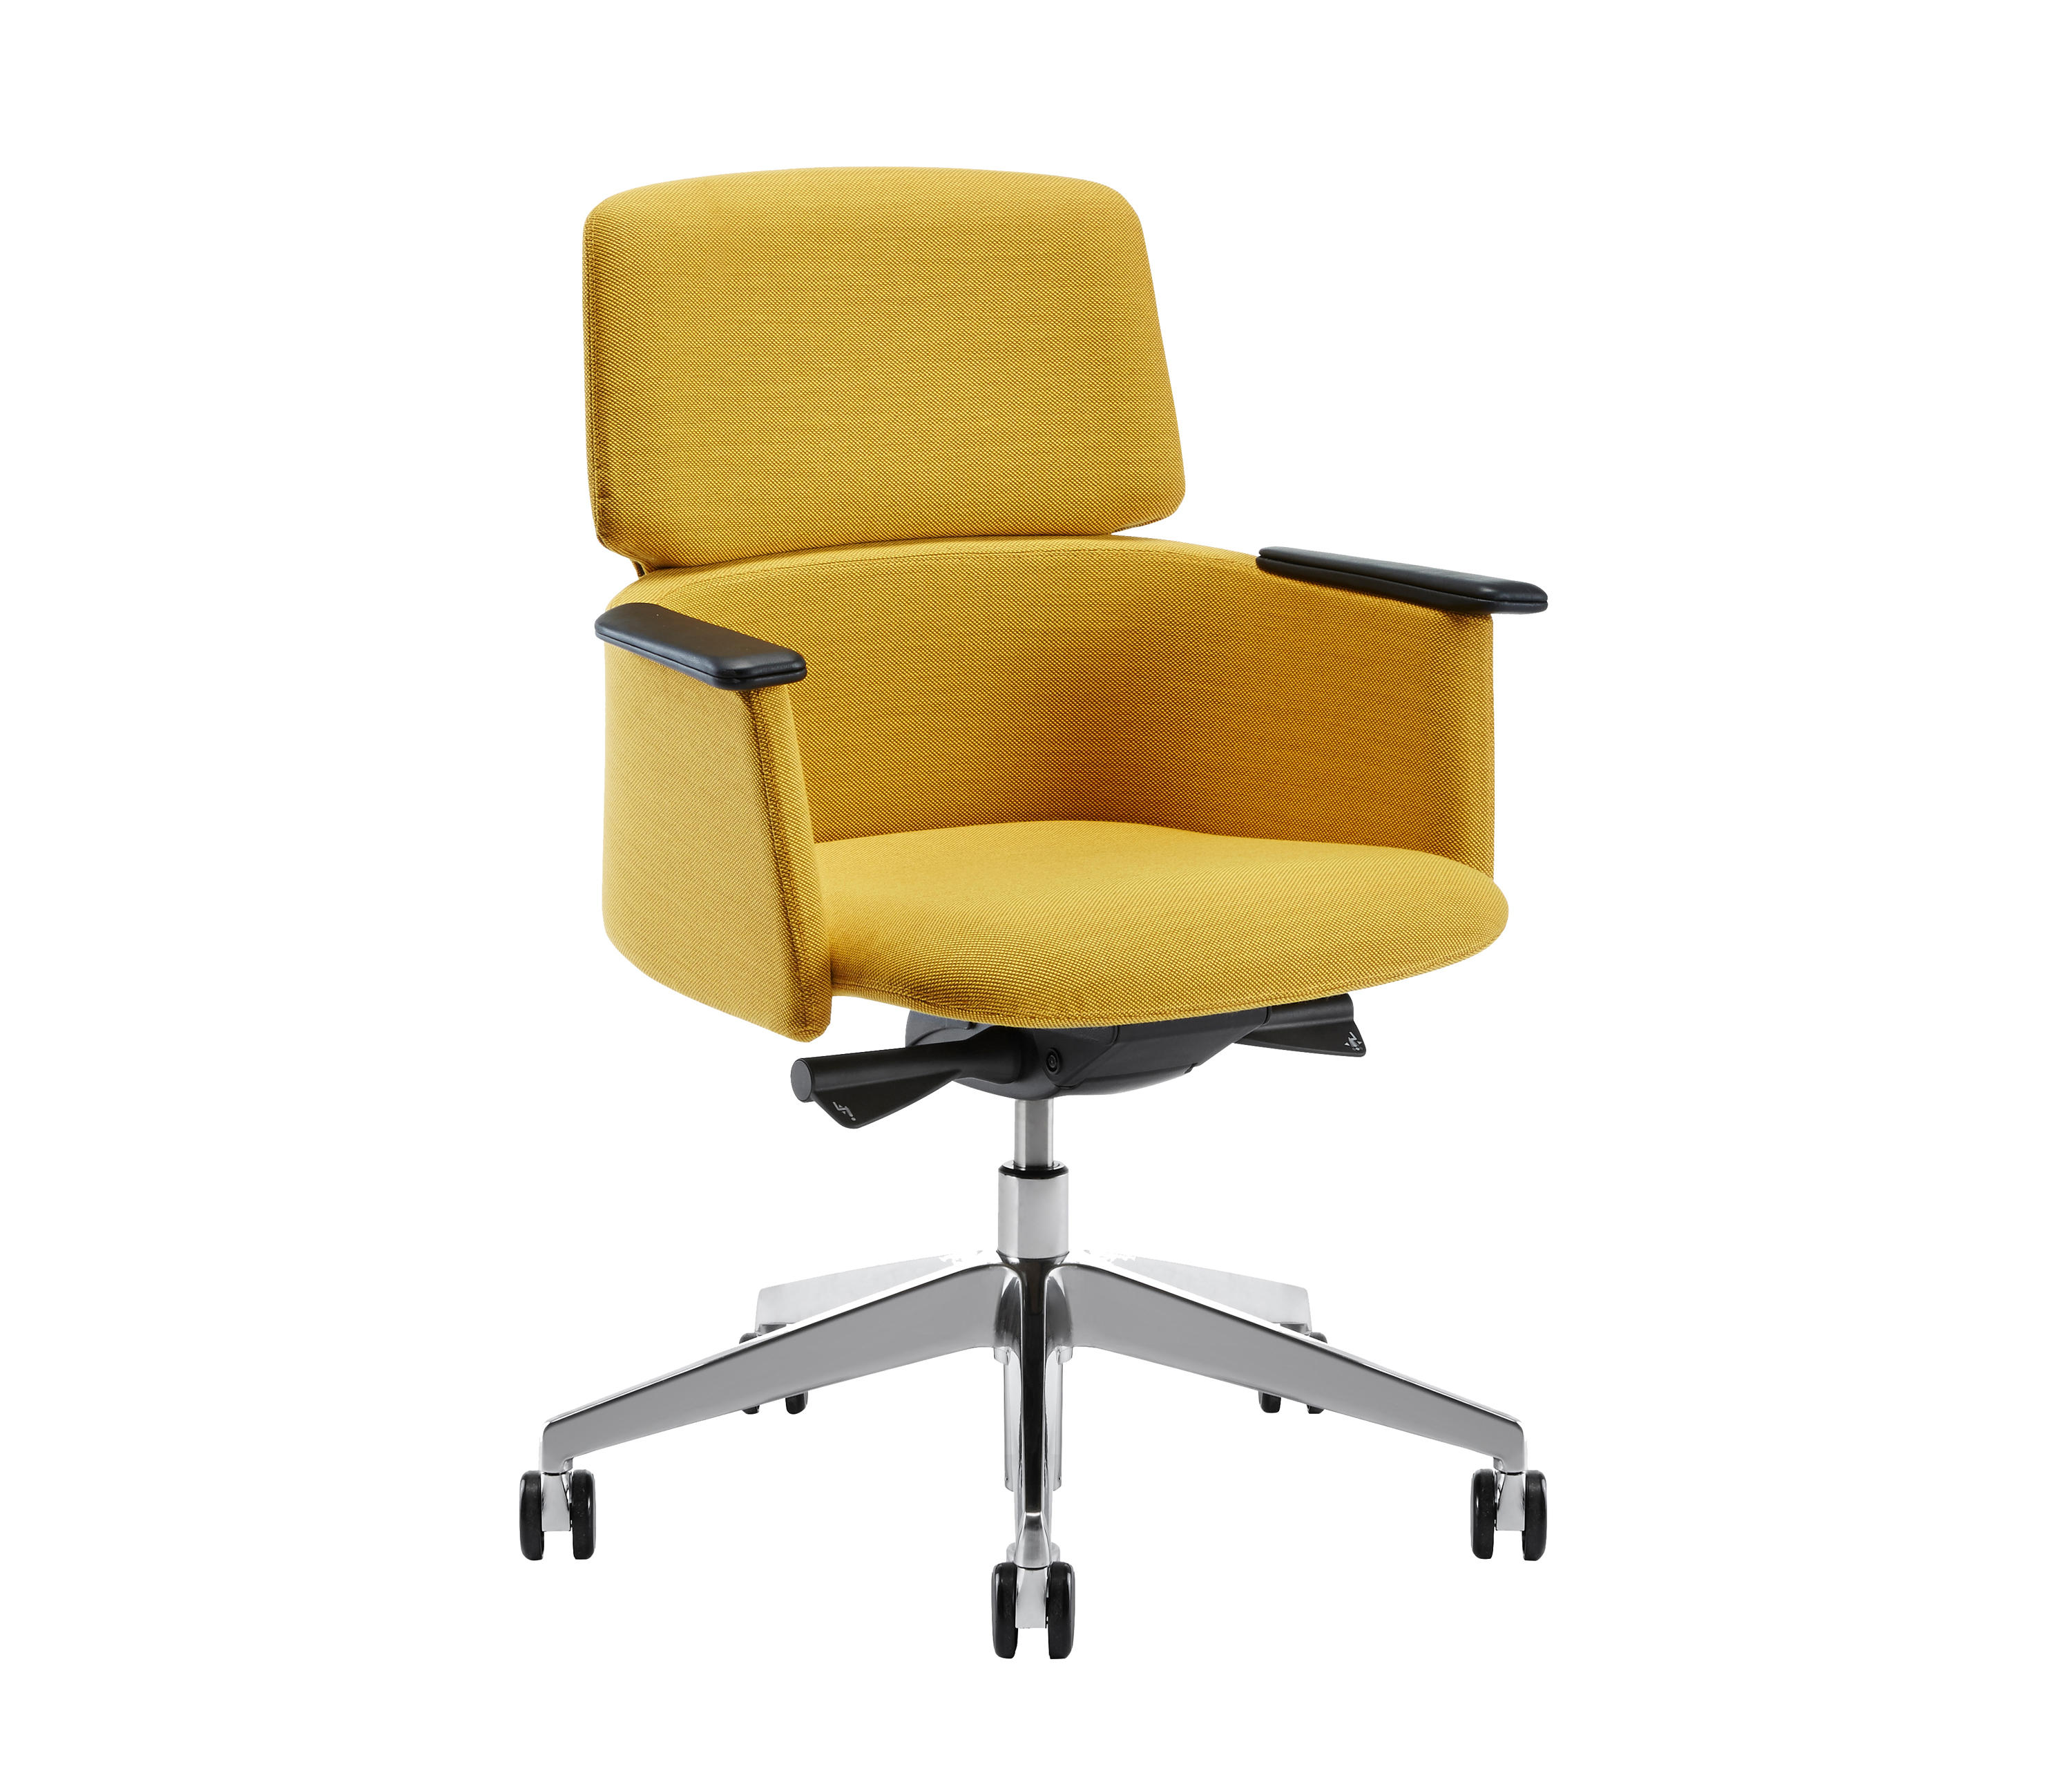 TOLA OFFICE CHAIR Visitors chairs Side chairs from Koleksiyon